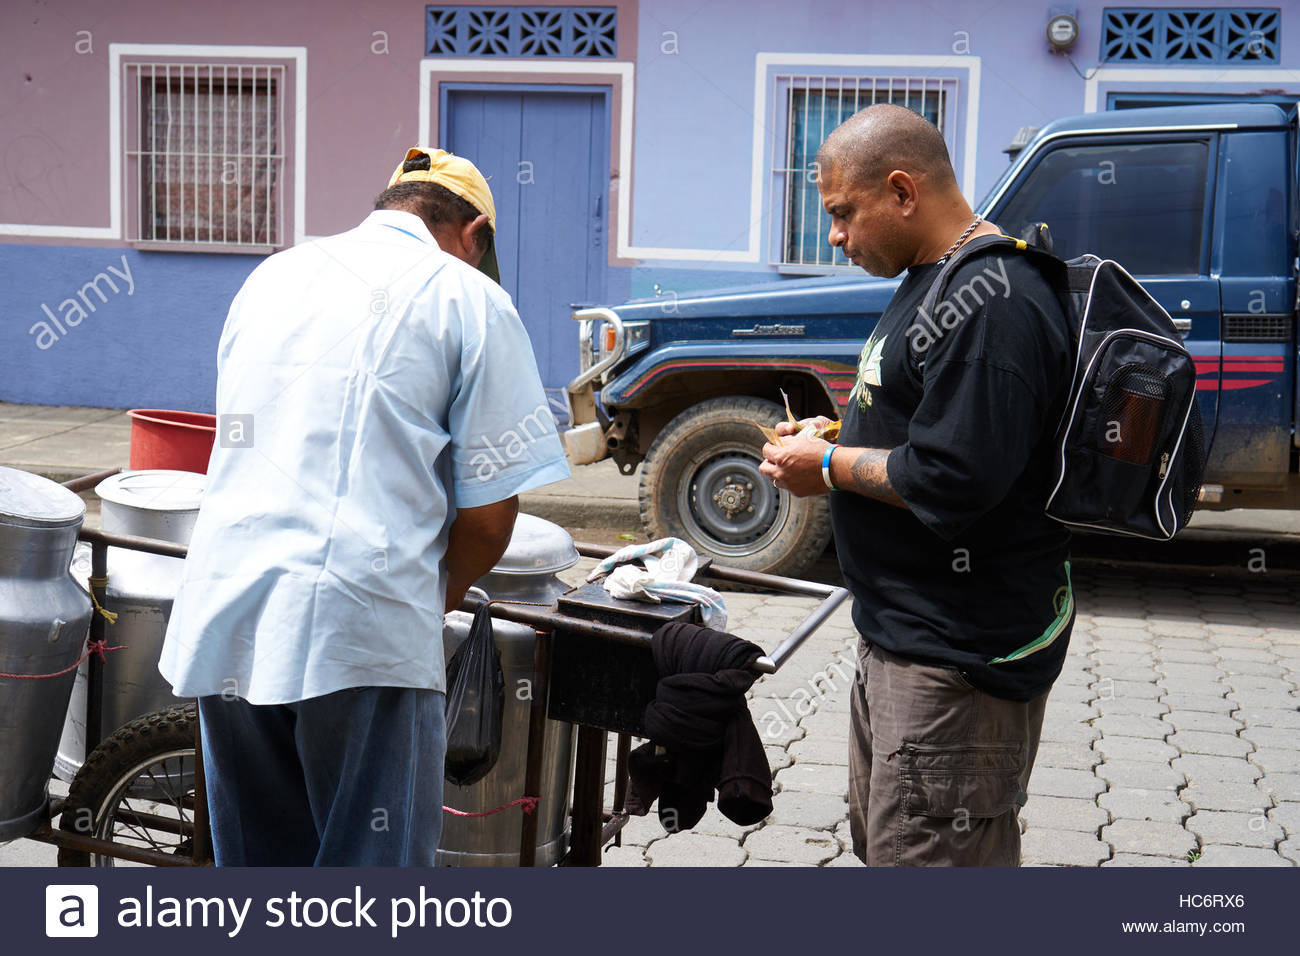 man-buying-milk-from-a-street-vendor-wit